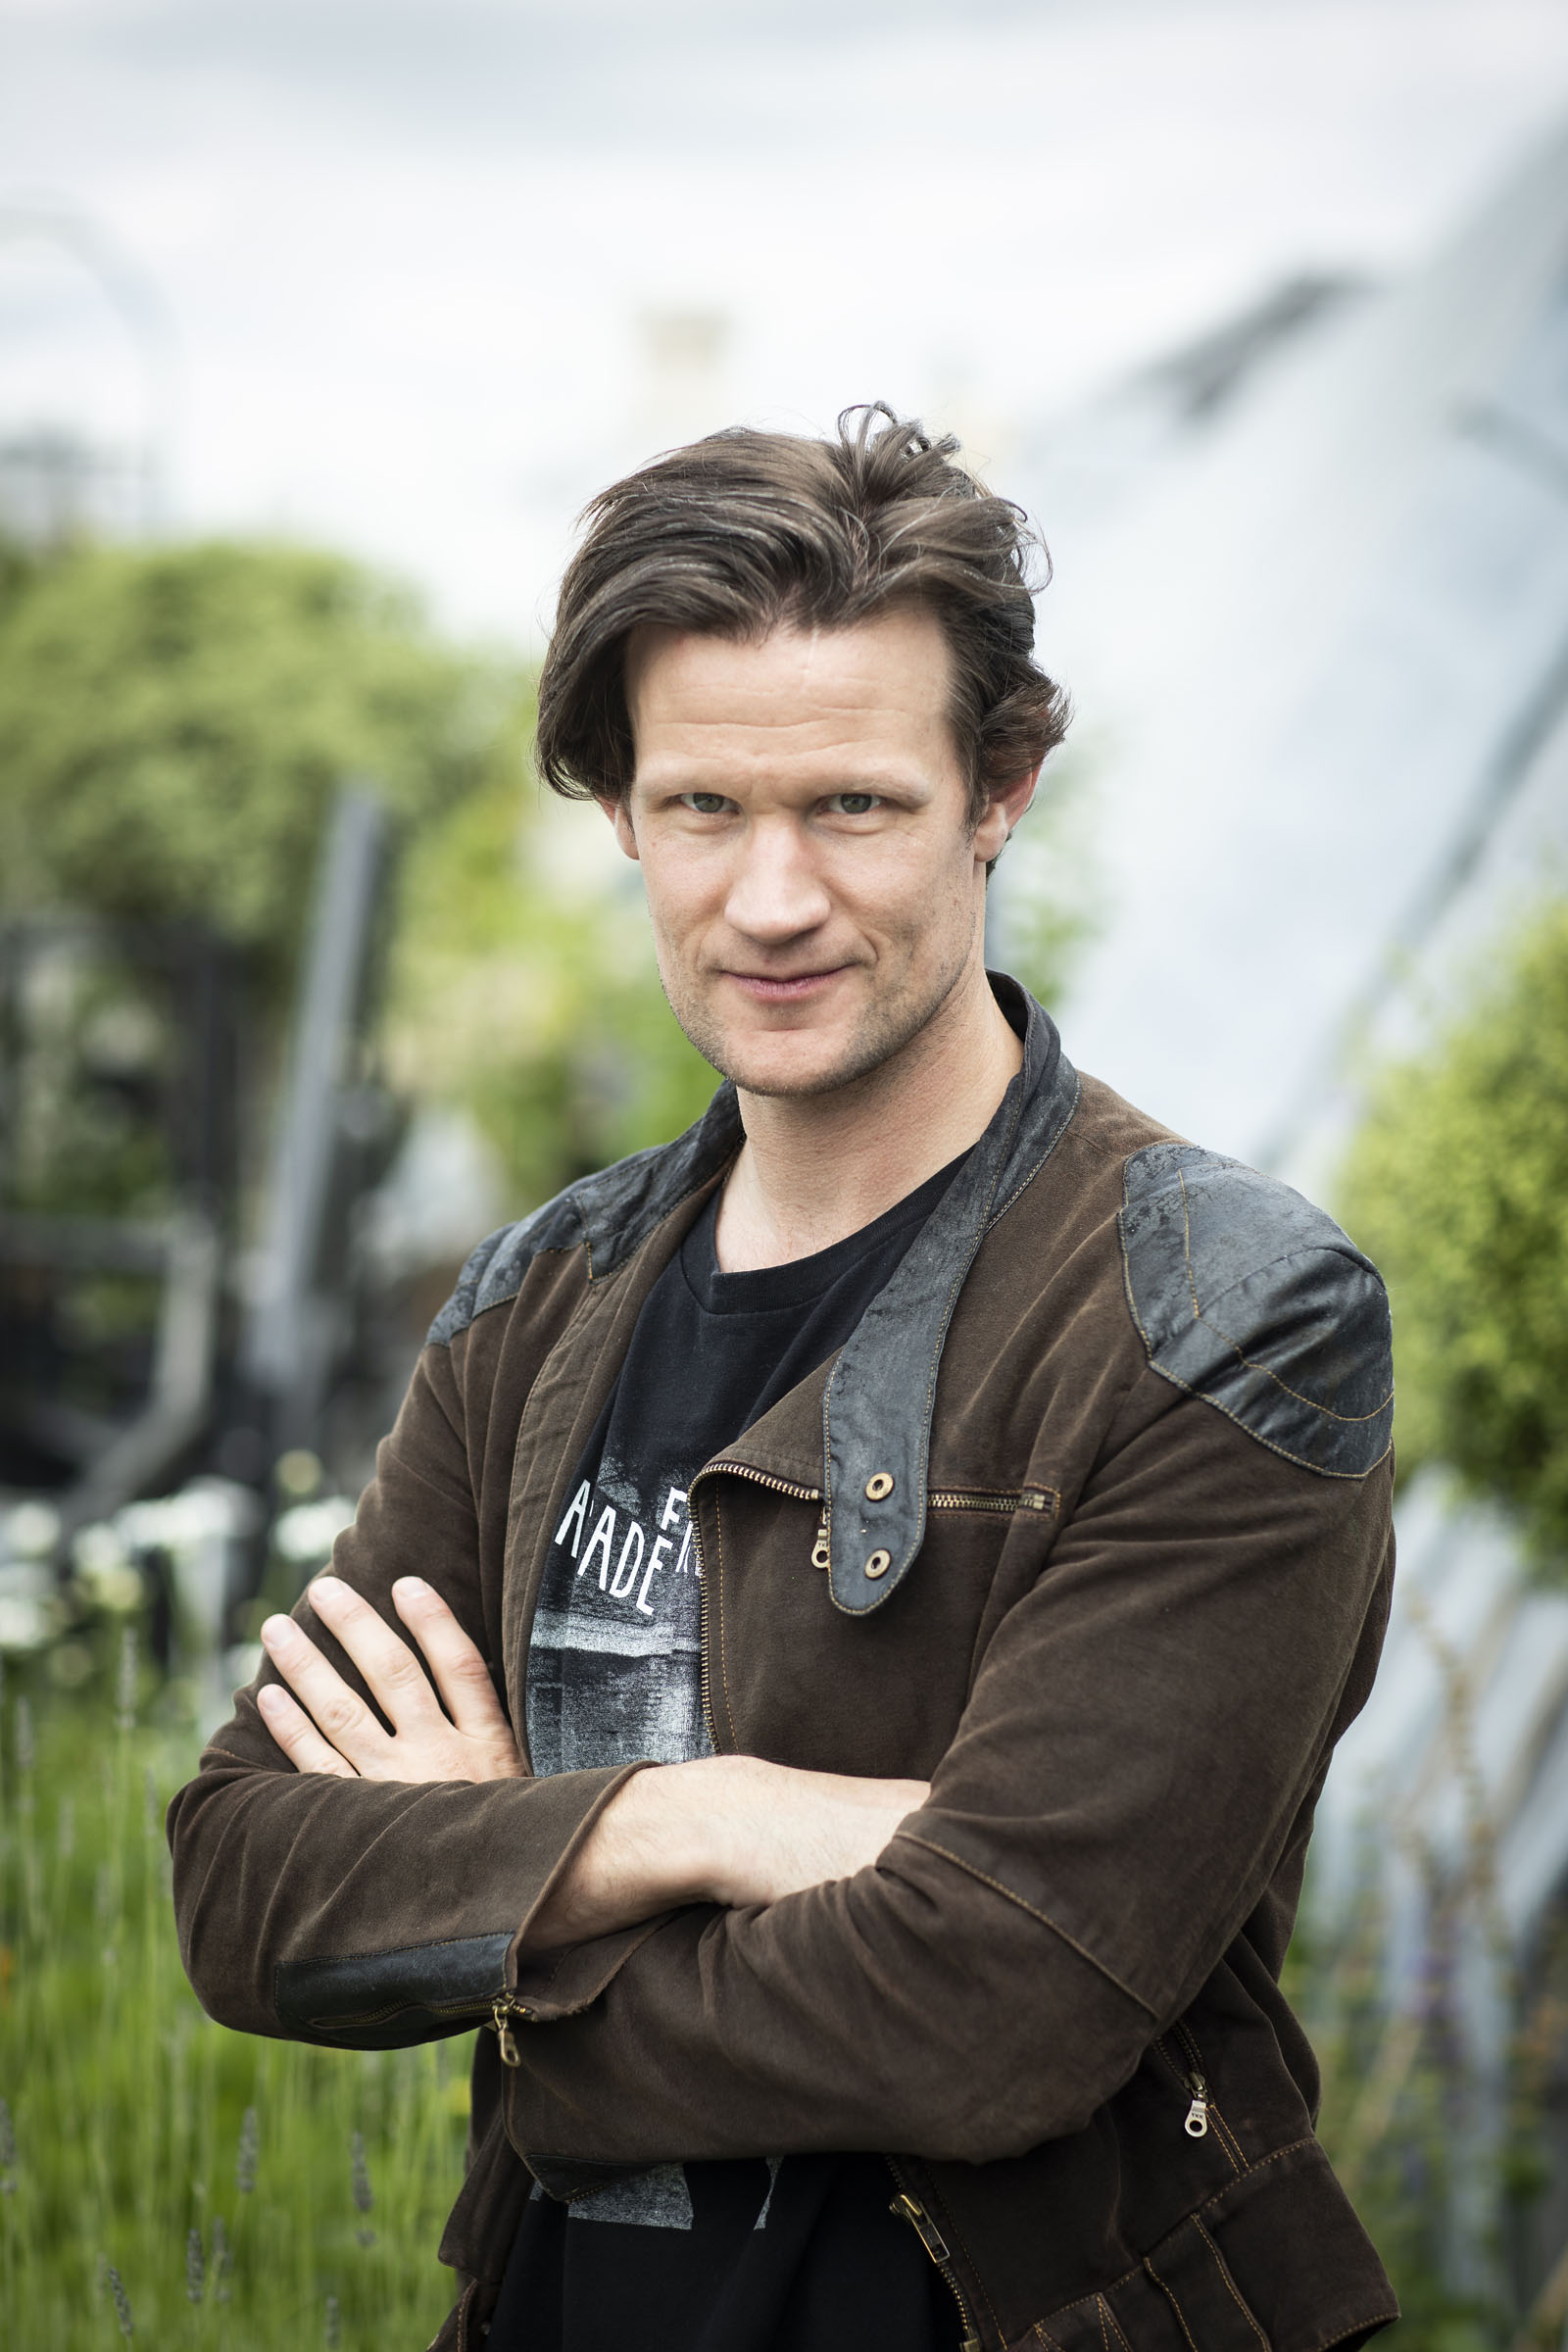 Matt Smith at an event for the National Youth Theatre